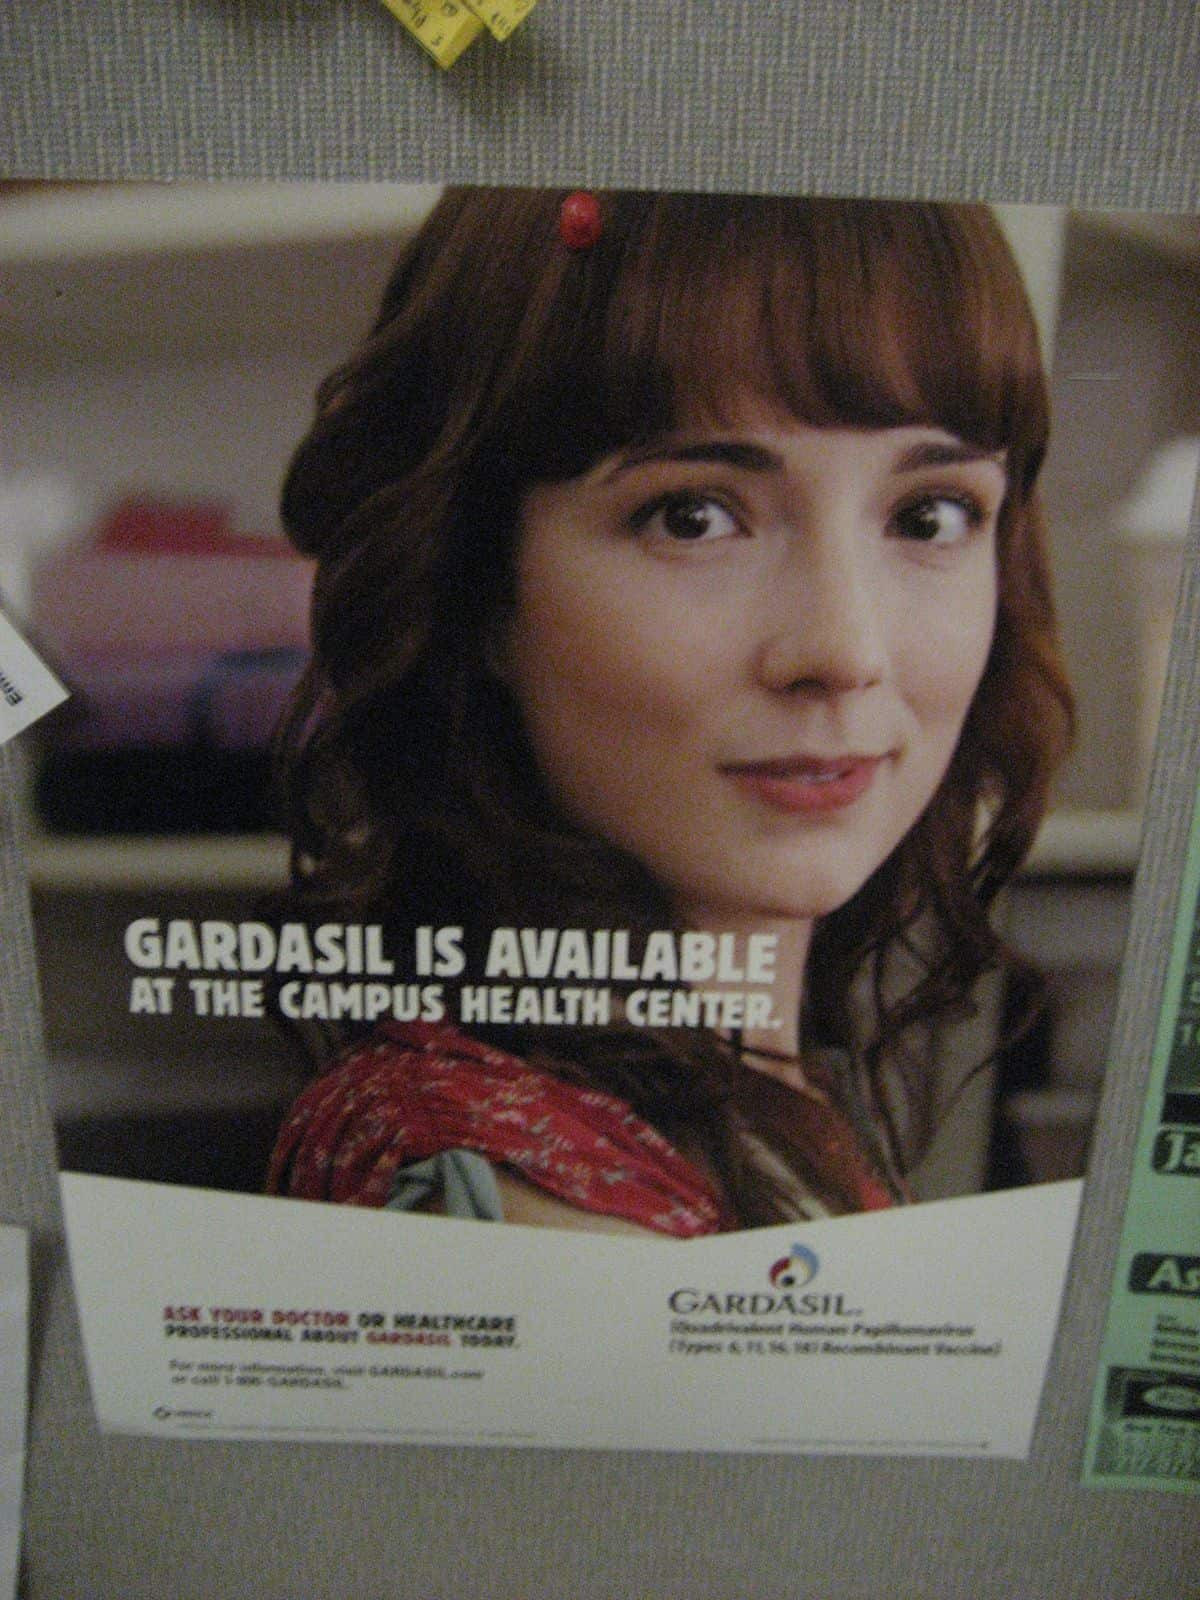 Pap Smear Amnesia: Pap Smear Proven Track Record for HPV Diseases. A Gardasil ad on a college campus